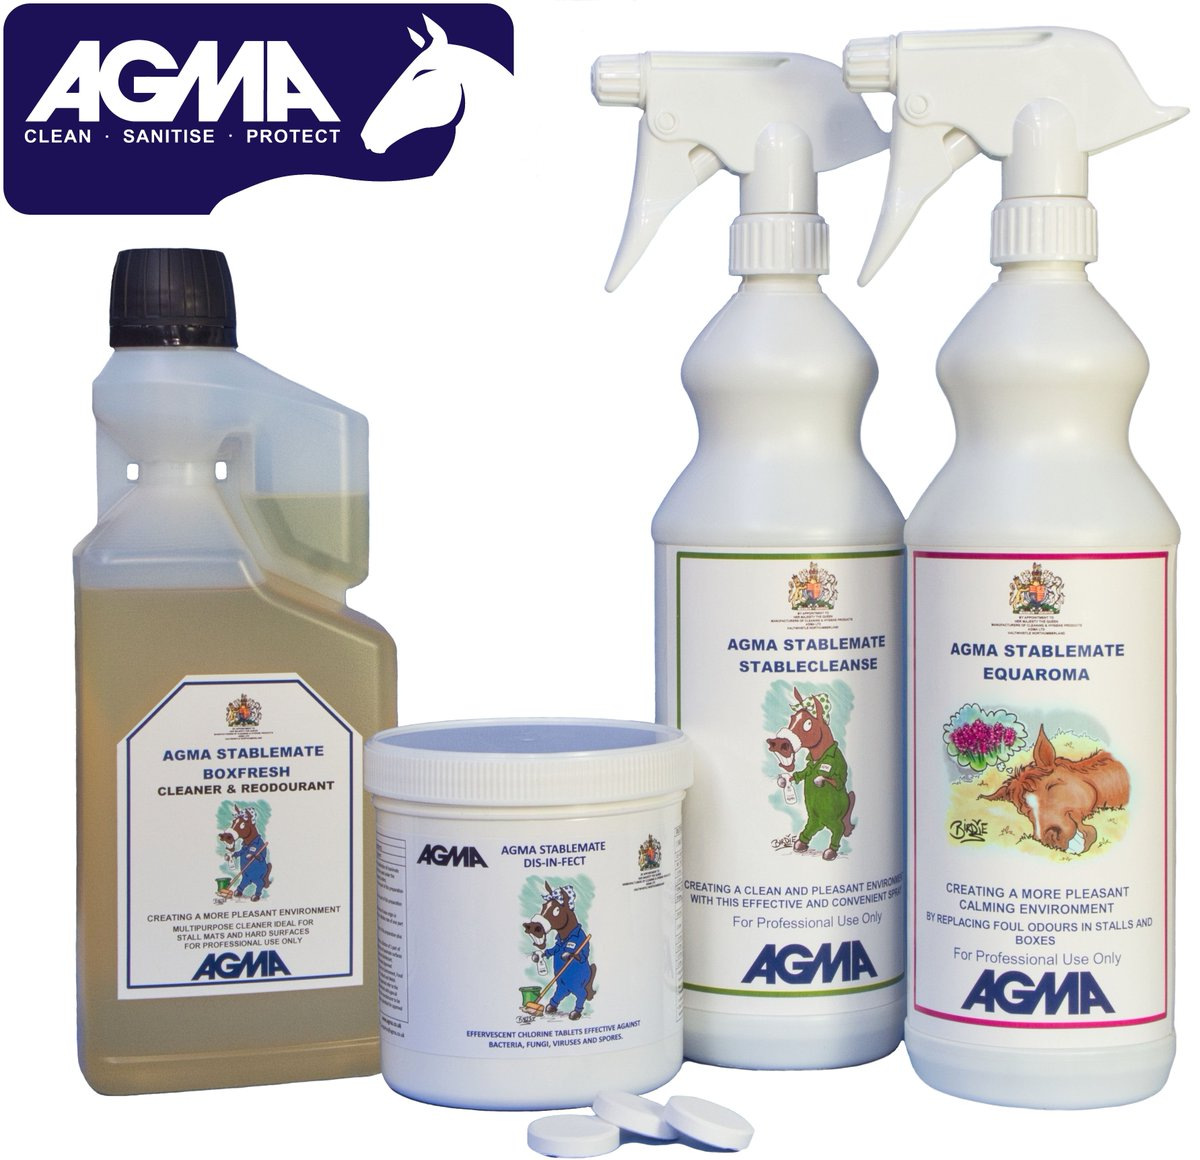 #StormHector wont keep us from launching our STABLEMATE Range in our online shop!! agma.co.uk/shop #agma #stablemate #horses #stables #cleaning #disinfection #DEFRAapproved #showjumping #dressage #eventing #horseracing #happyhacker #equinehealth #newproduct #launch